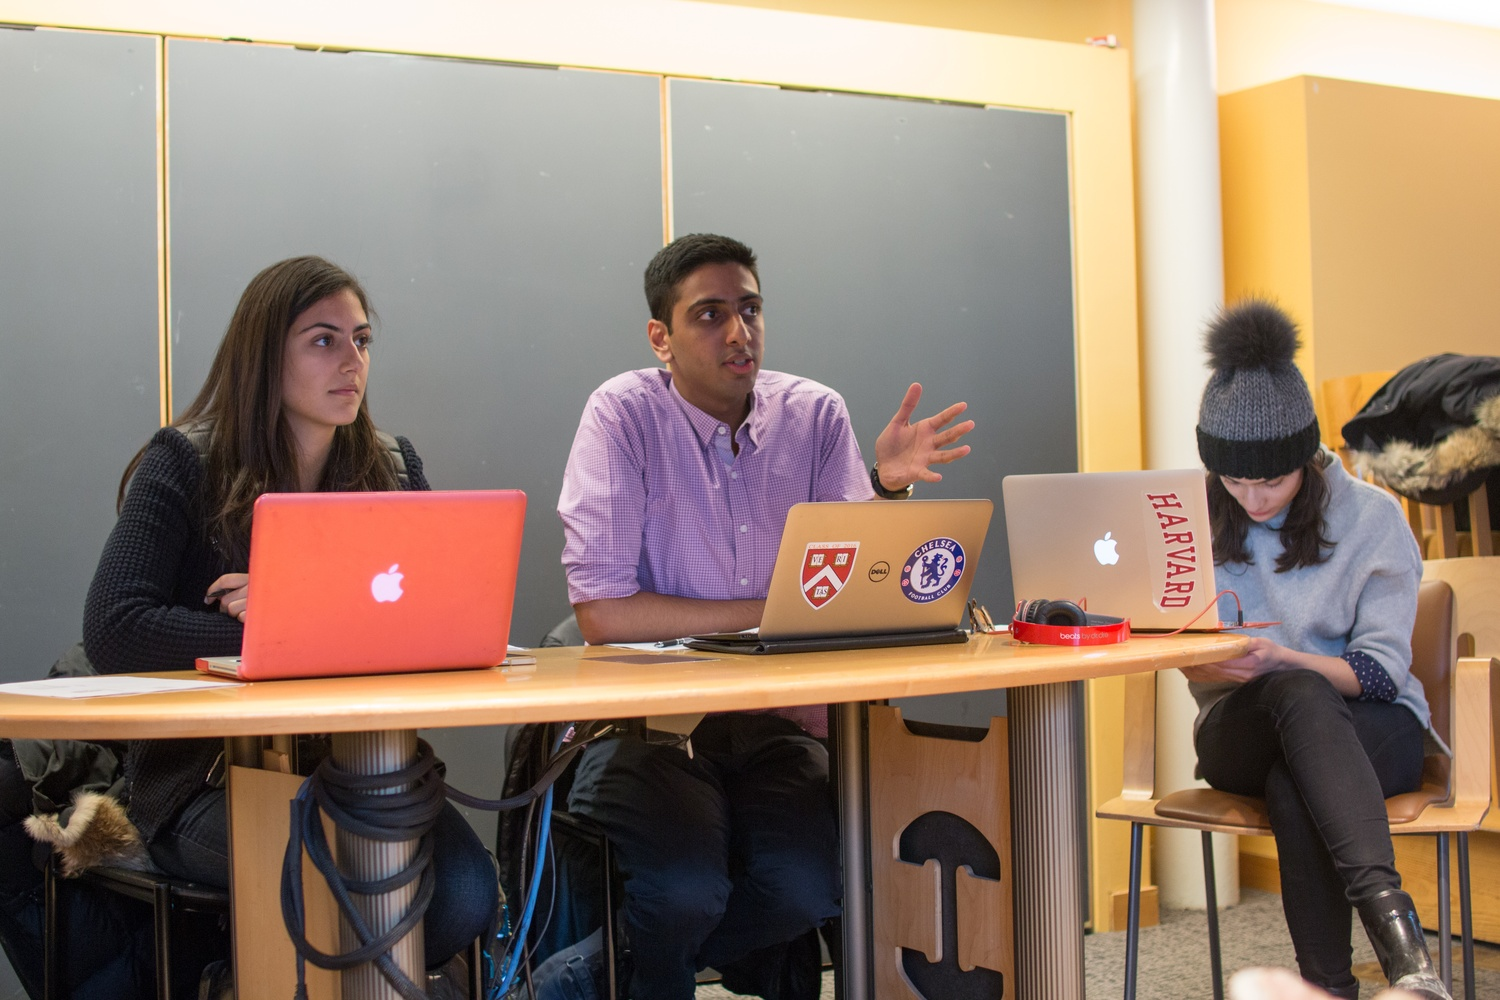 On Feb. 1, Undergraduate Council President Ava Nasrollahzadeh '16 and Vice President Dhruv P. Goyal '16 led the first UC meeting of the semester.